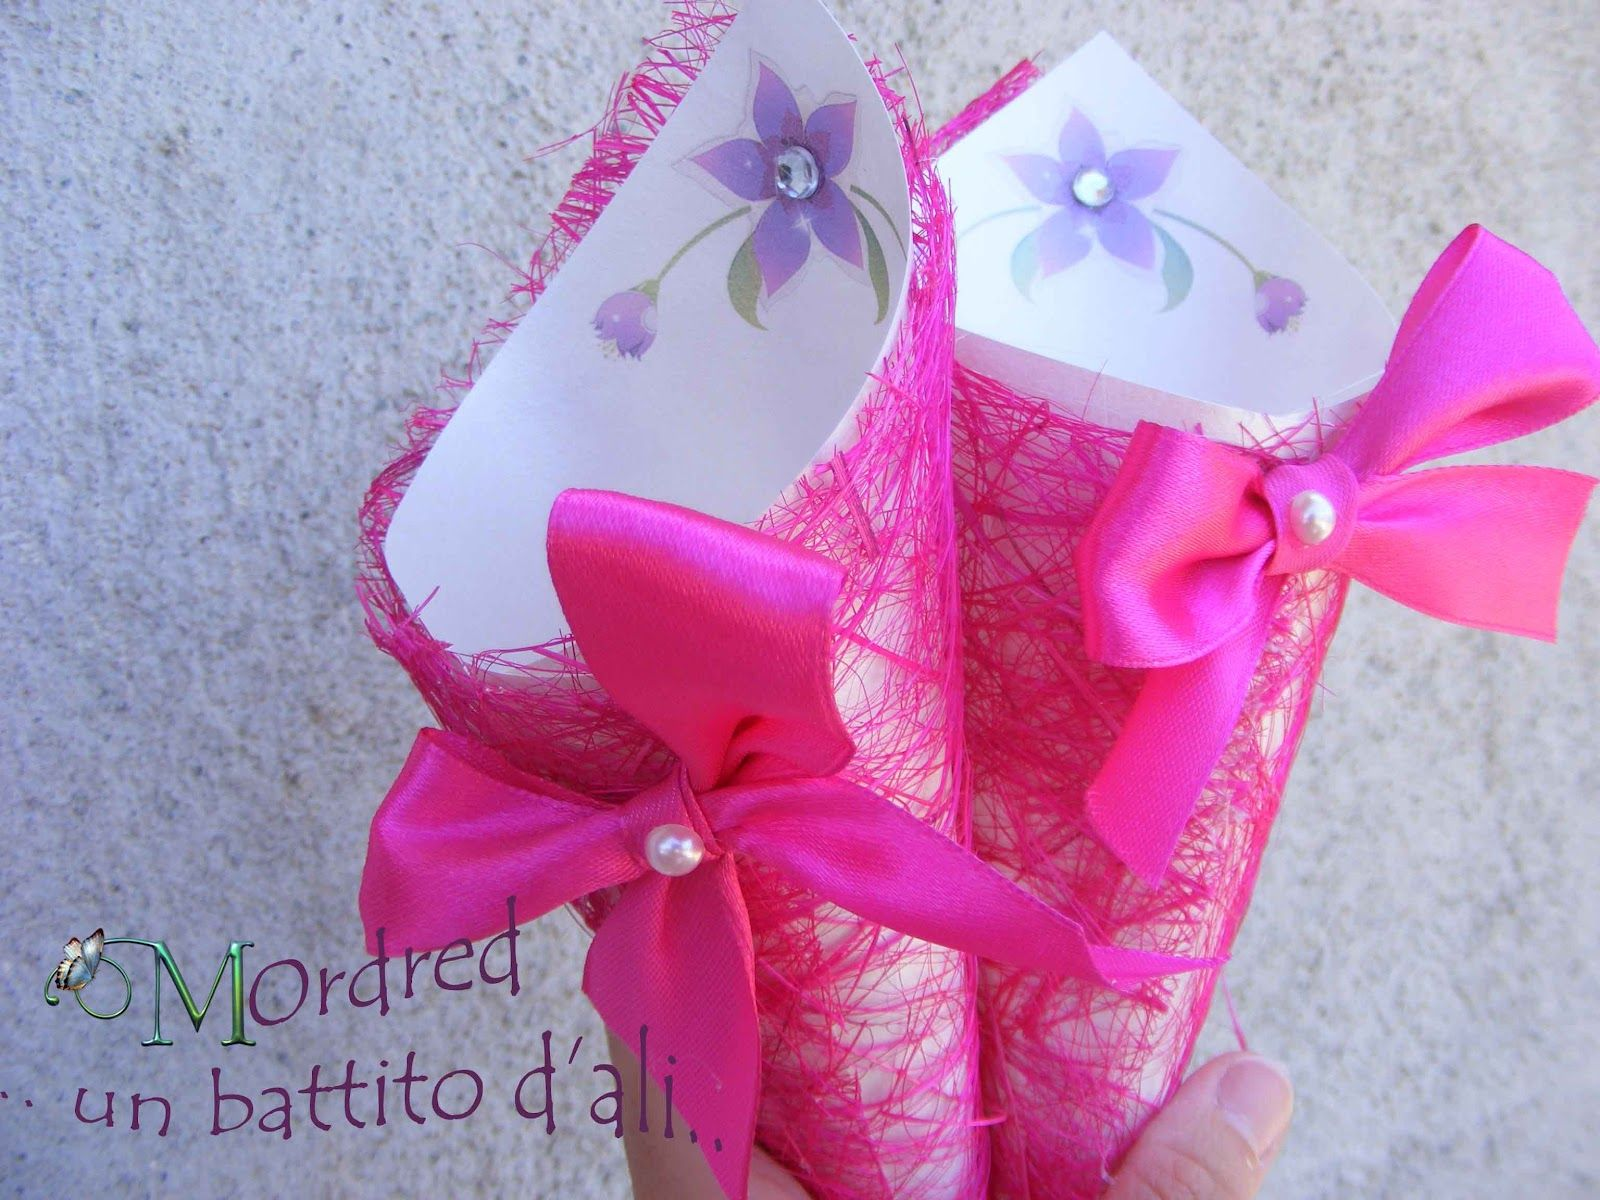 Coni portariso fuxia   Paper Crafts   Pinterest   Wedding and Weddings